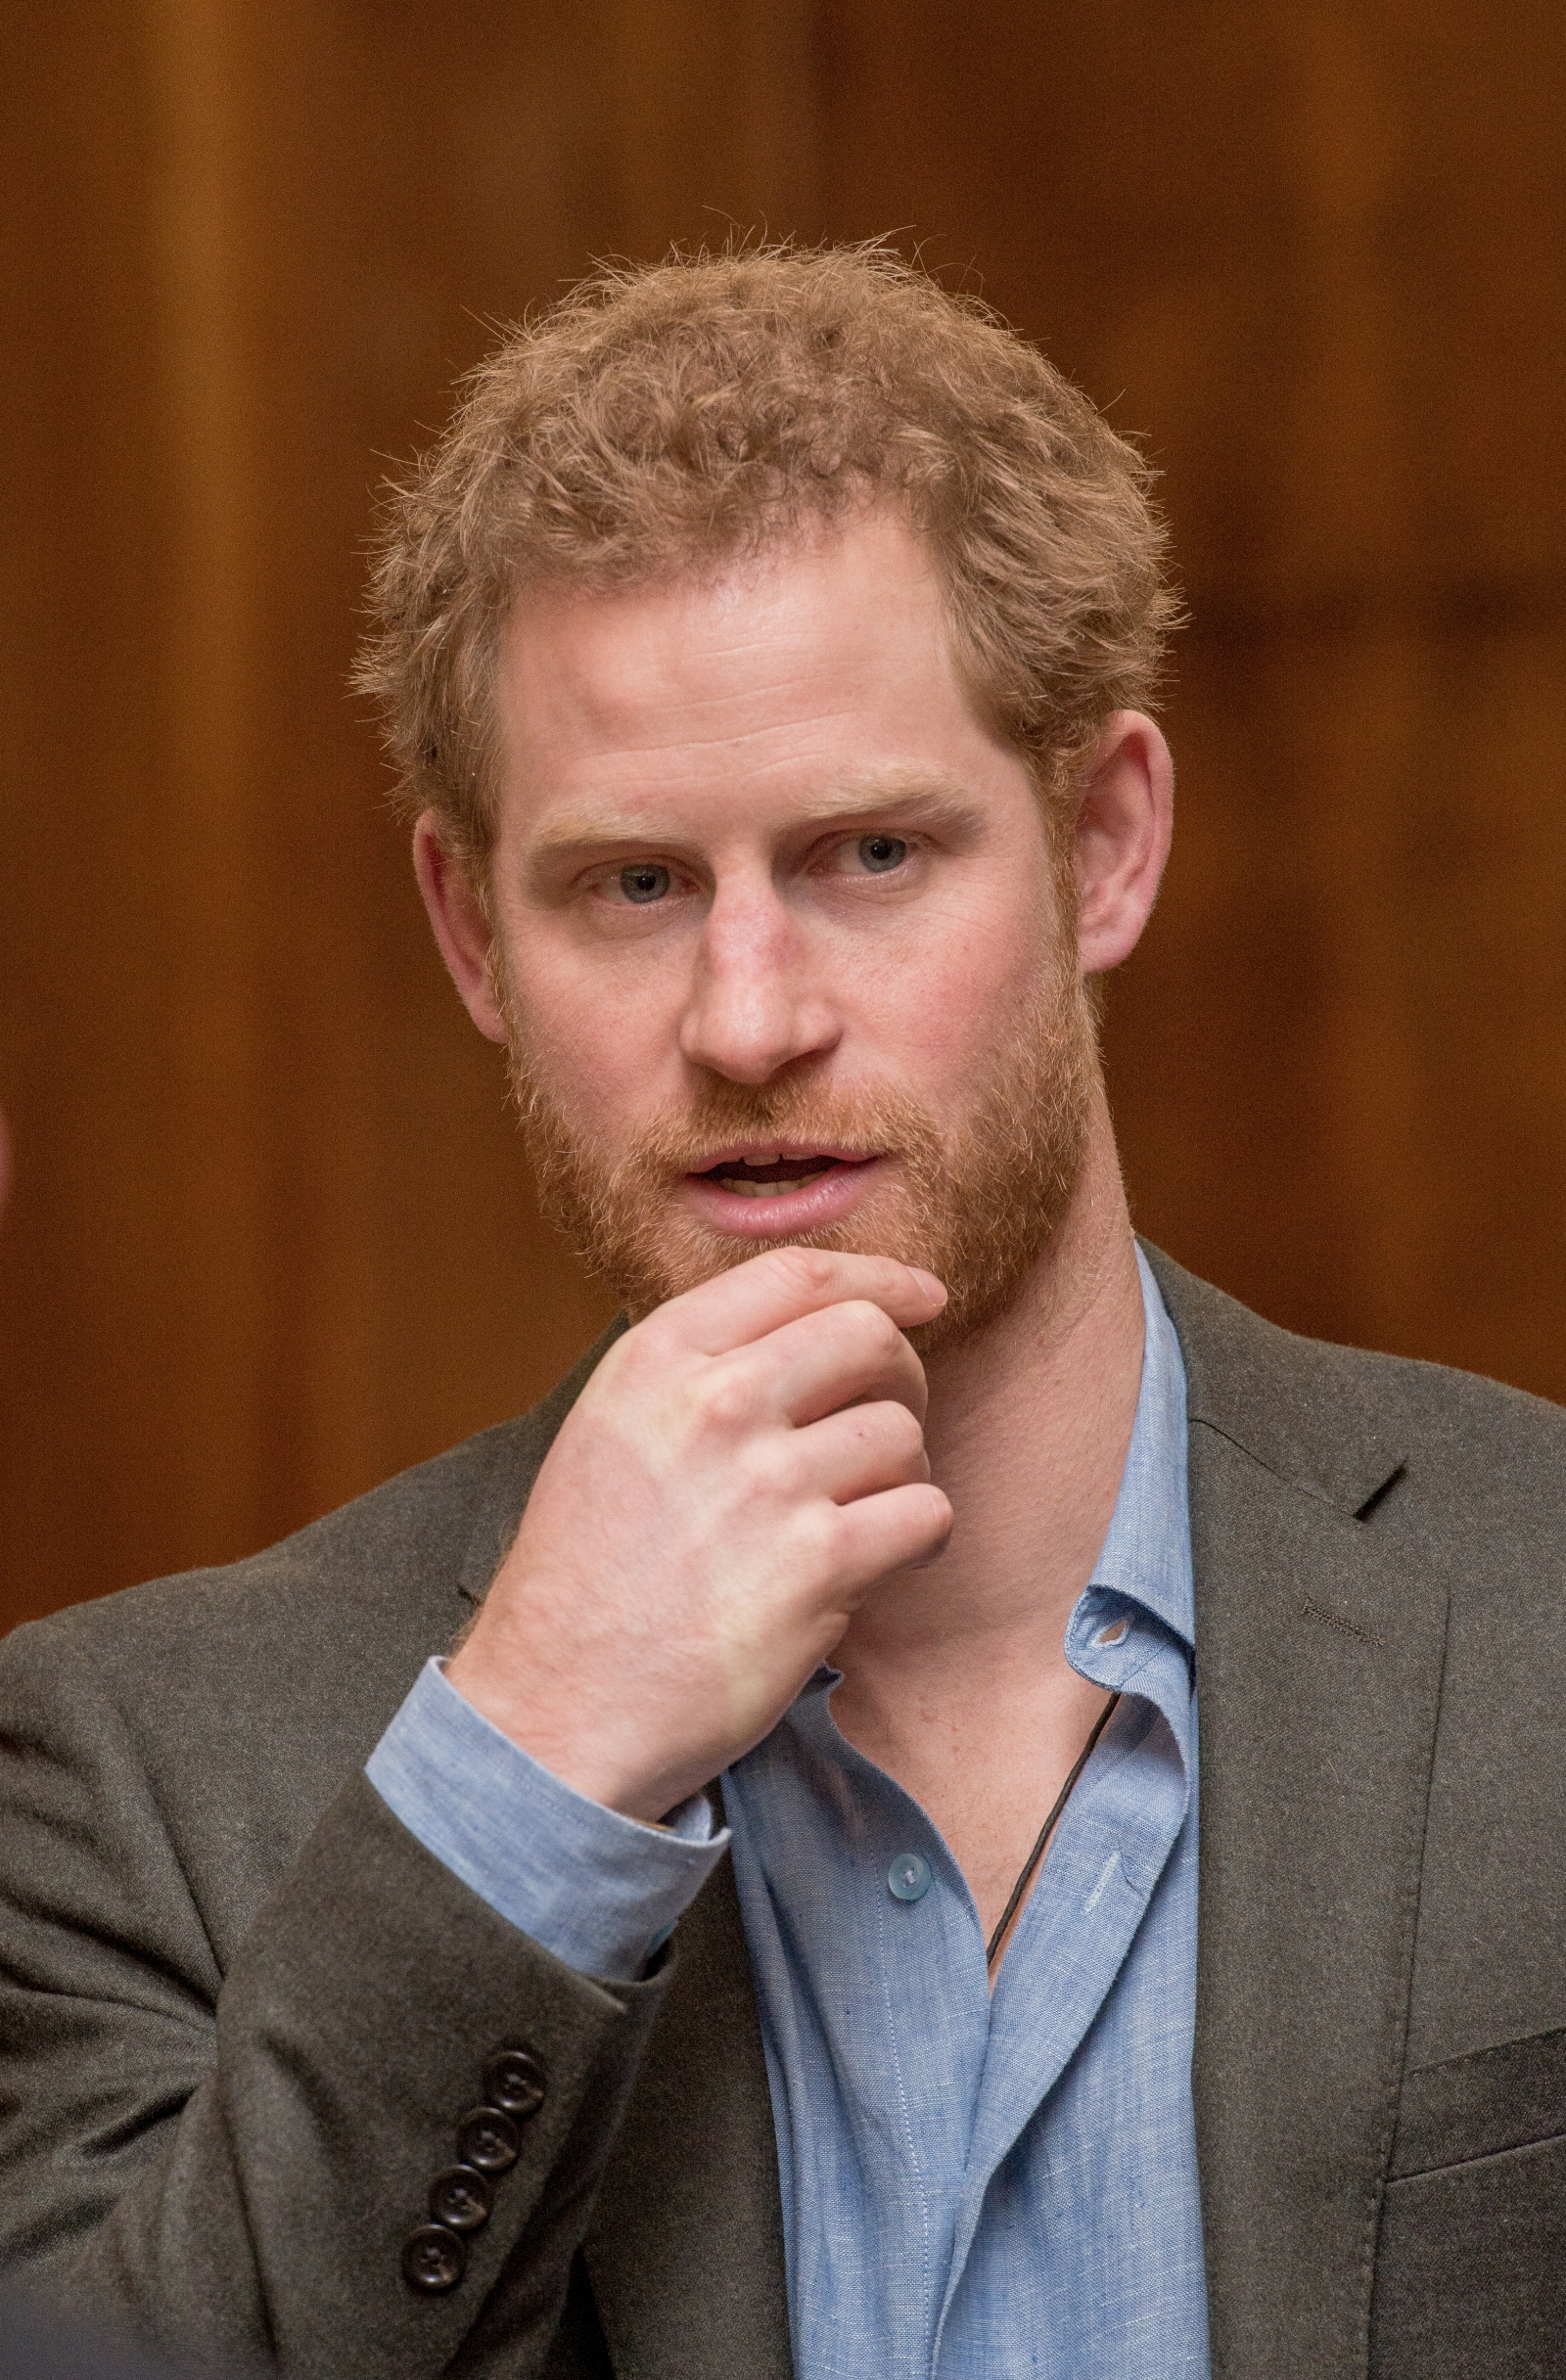 prince harry fears donald trump is 39 threat to human rights 39 ahead of president 39 s royal visit. Black Bedroom Furniture Sets. Home Design Ideas